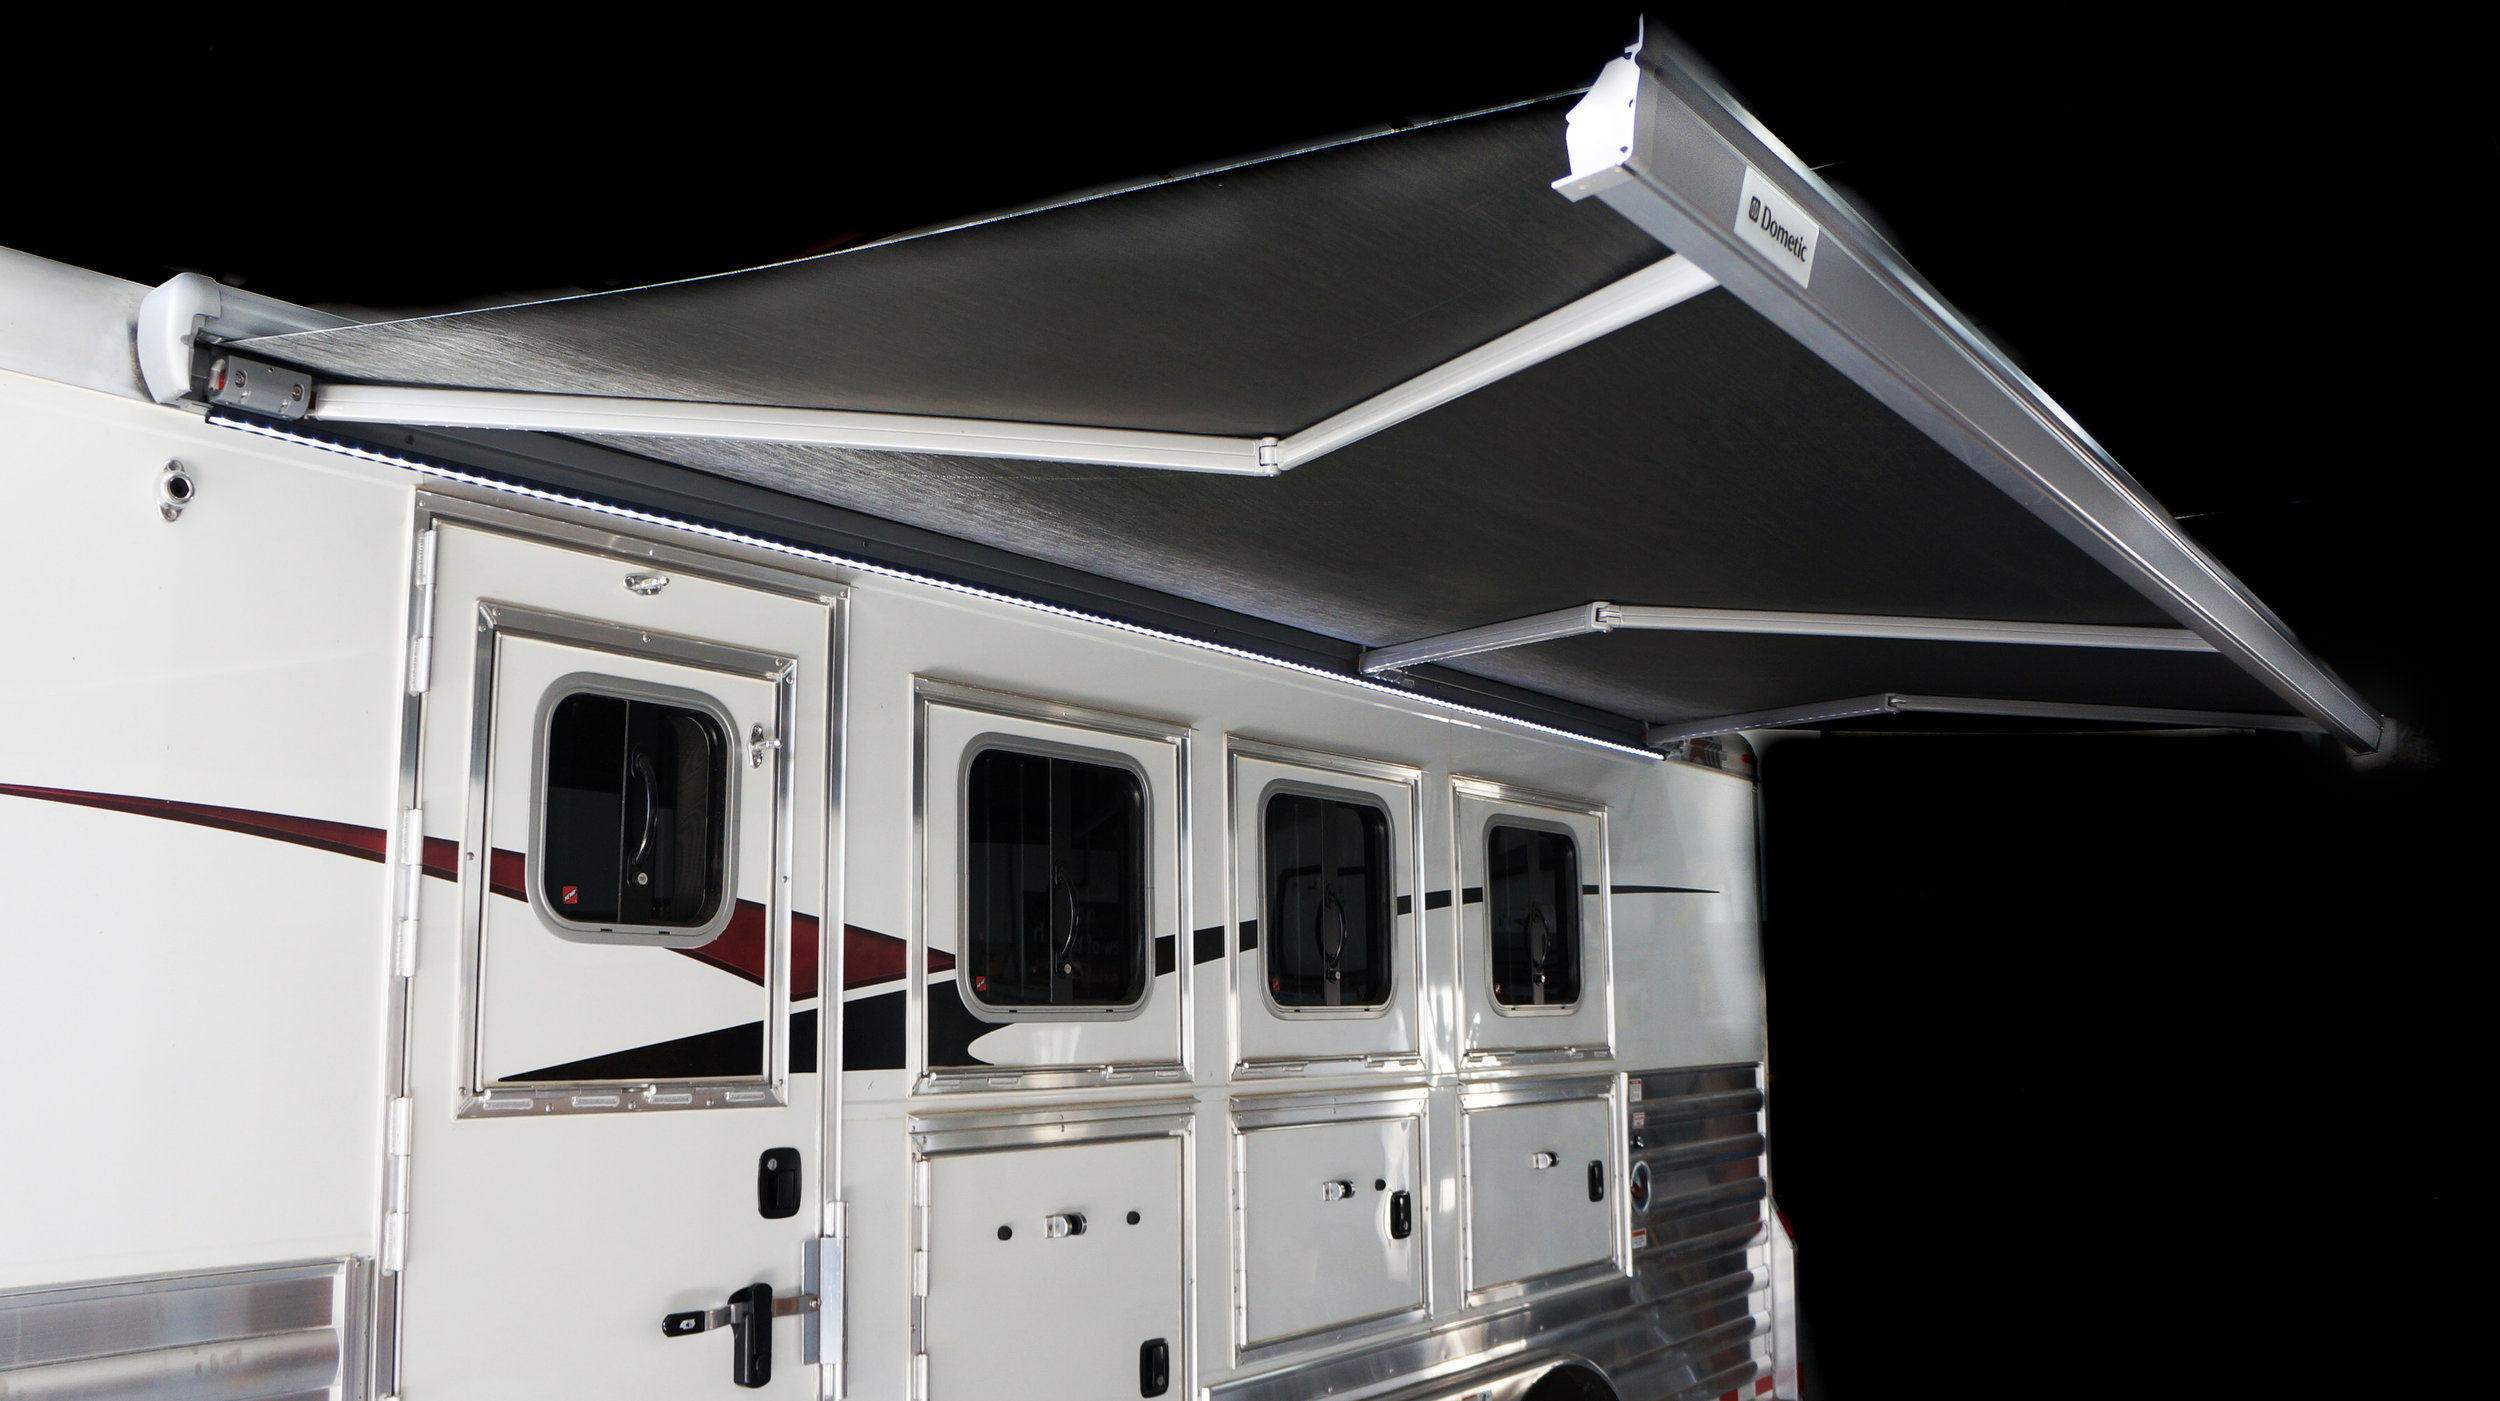 9500 Electric Awning with Motion Sensor Open